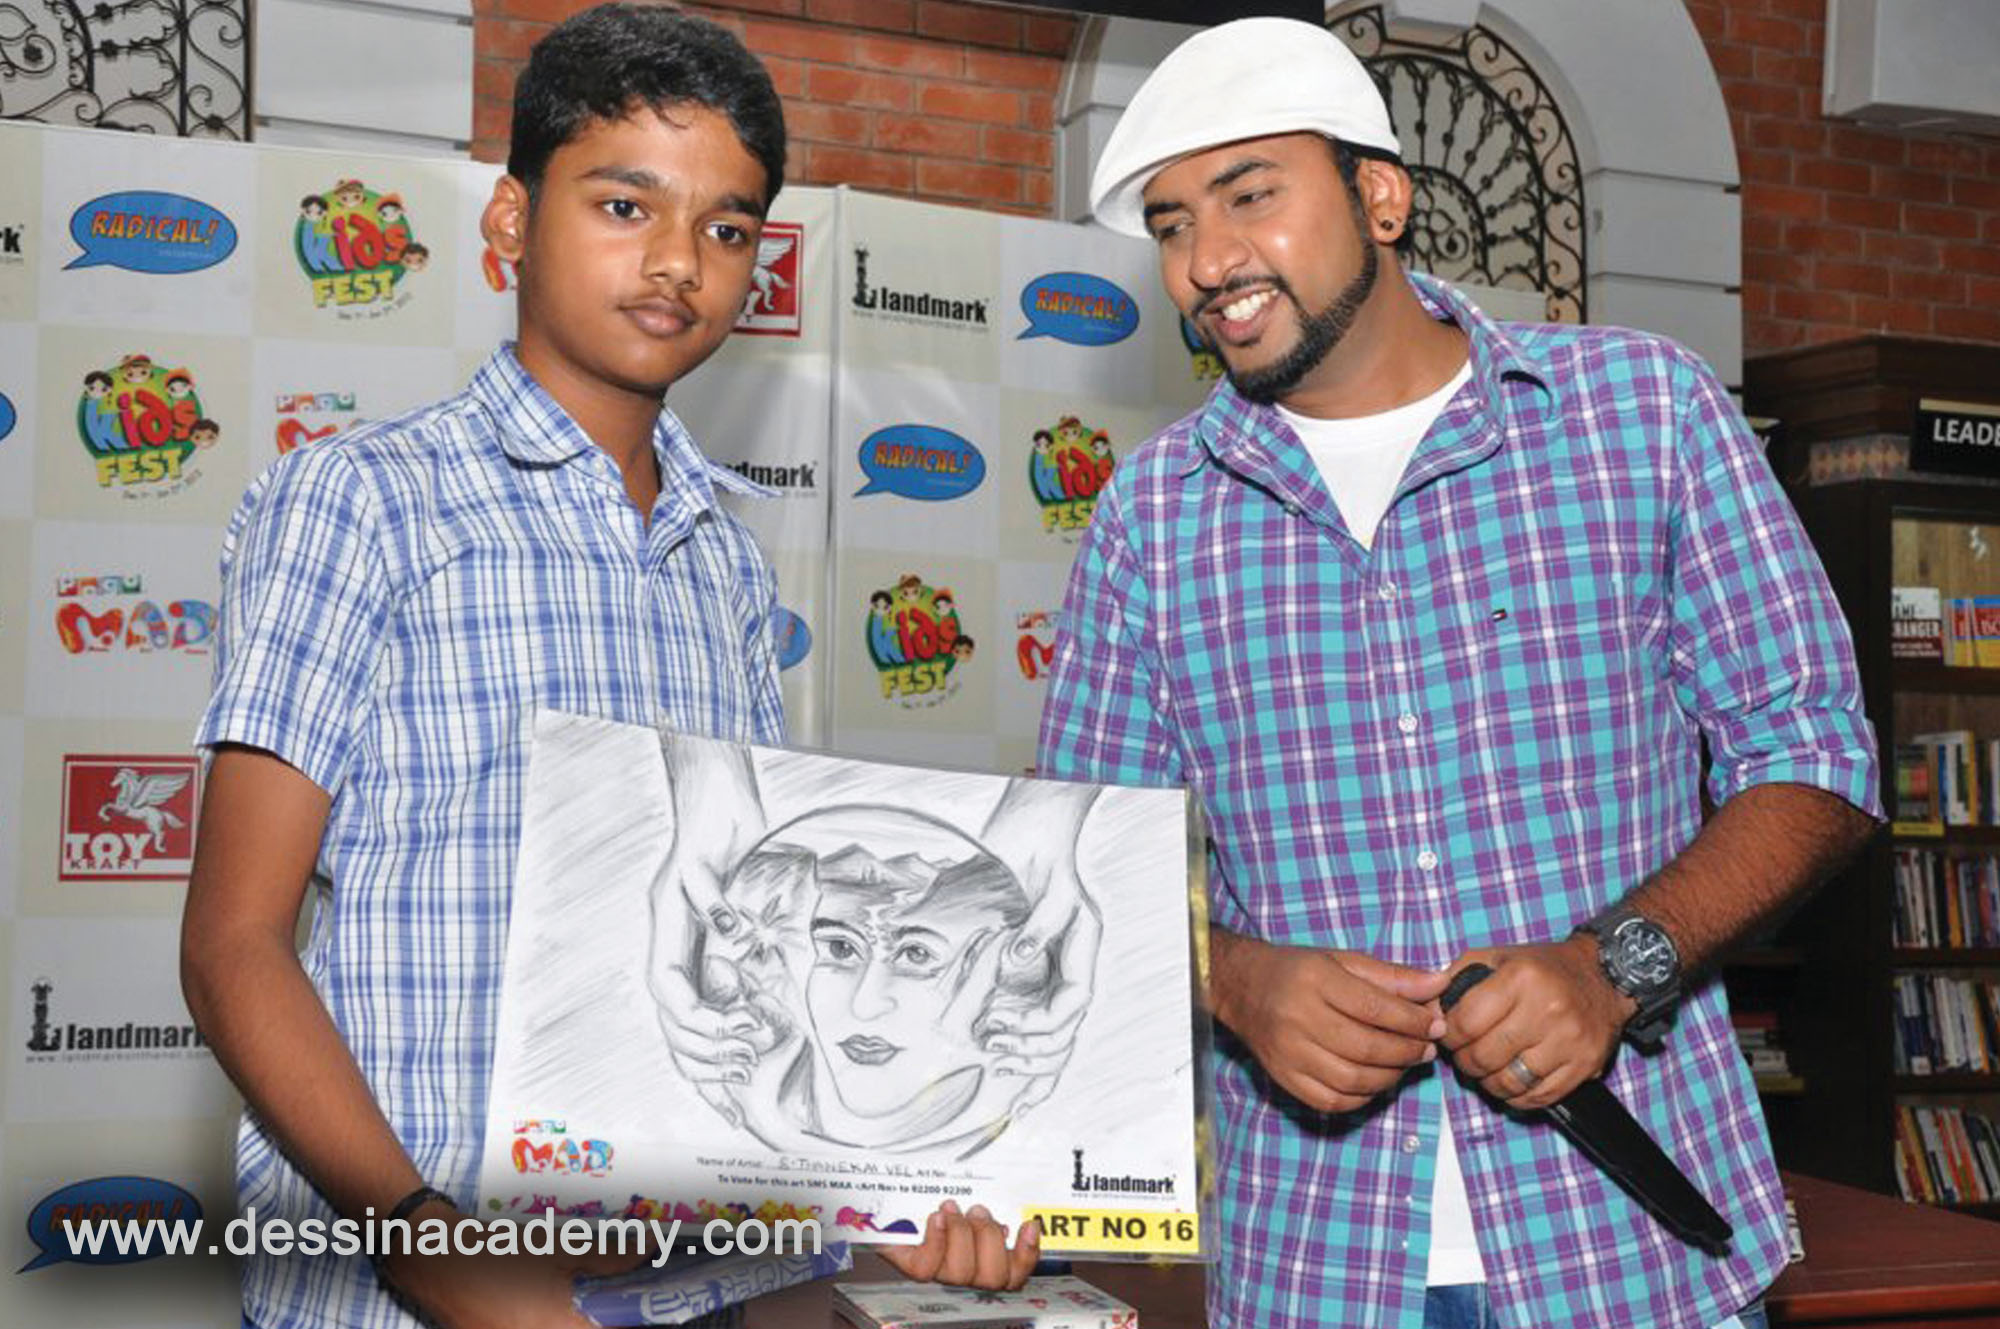 Dessin School of Arts Students Acheivement 5, Dessin School of Arts, sketching classes For Kids in Anna Nagar East L Block